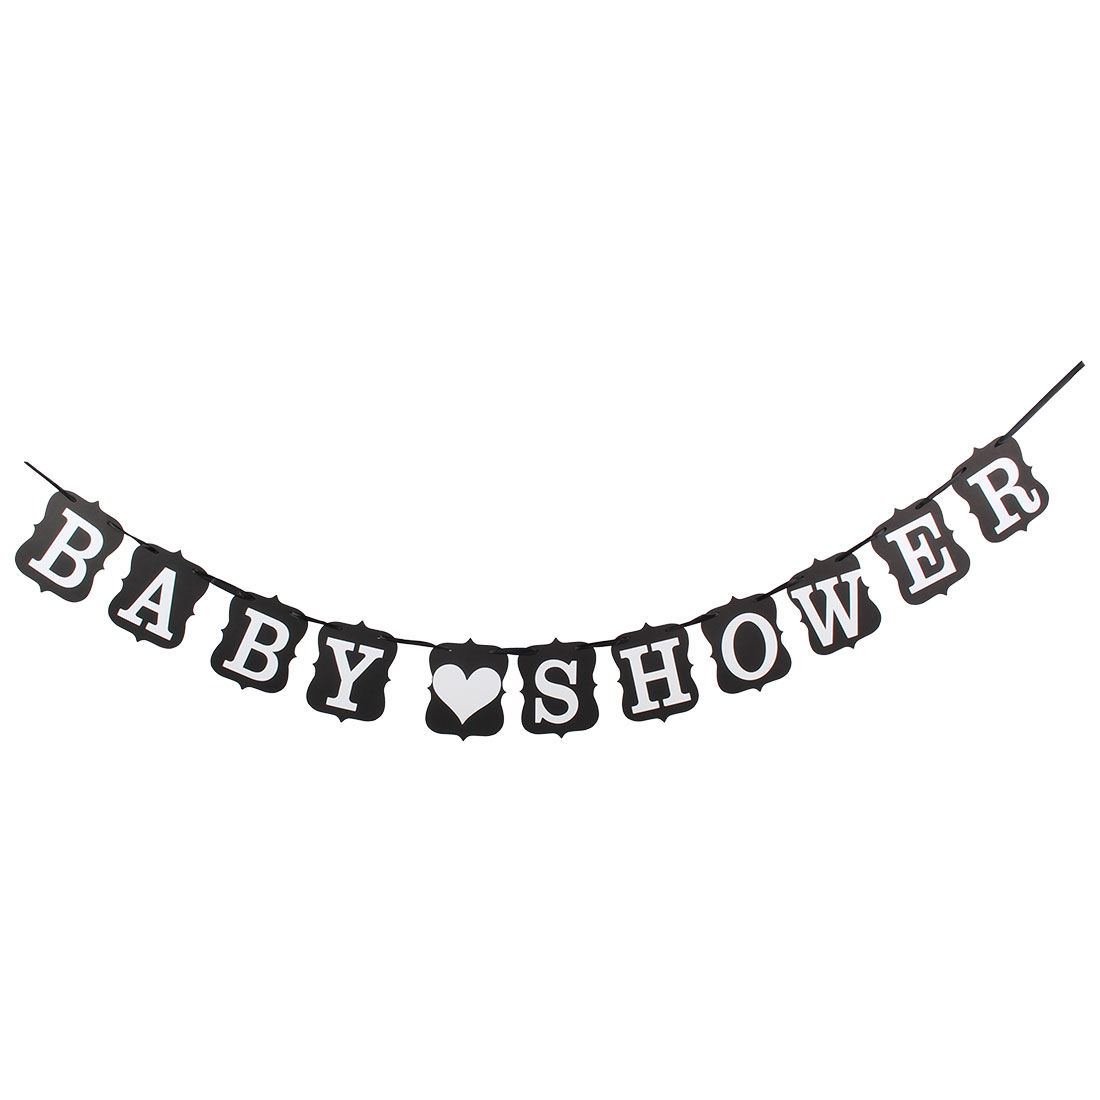 BABY SHOWER Letter Card Banner Bunting Garland Venue Decoration Photo Prop Black